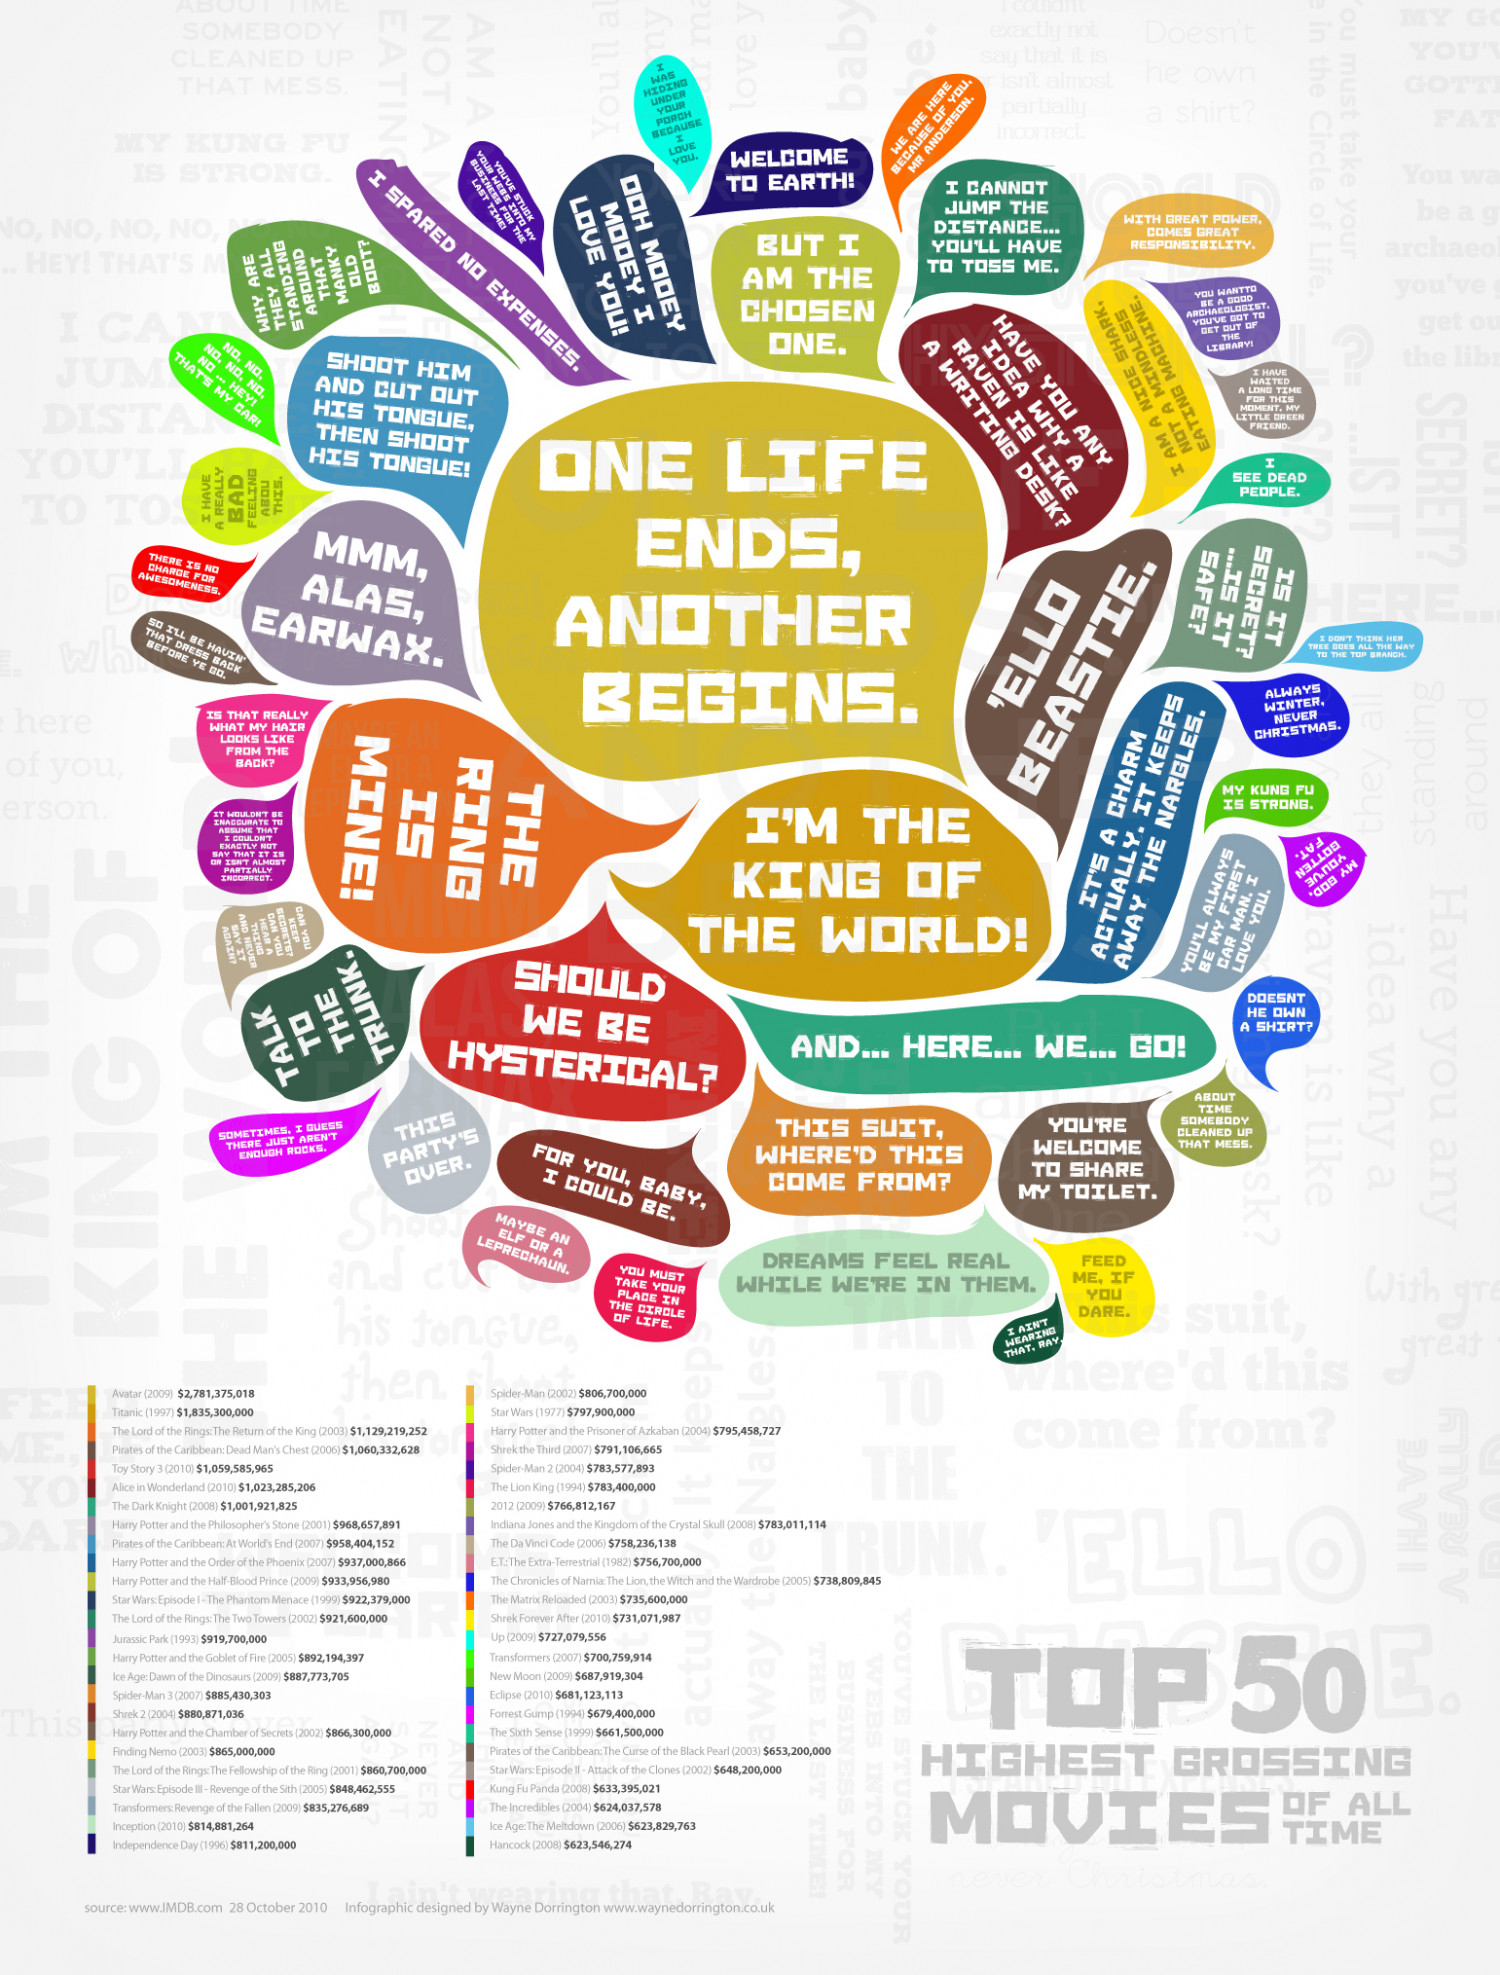 The Most Popular Movies of All Time Infographic